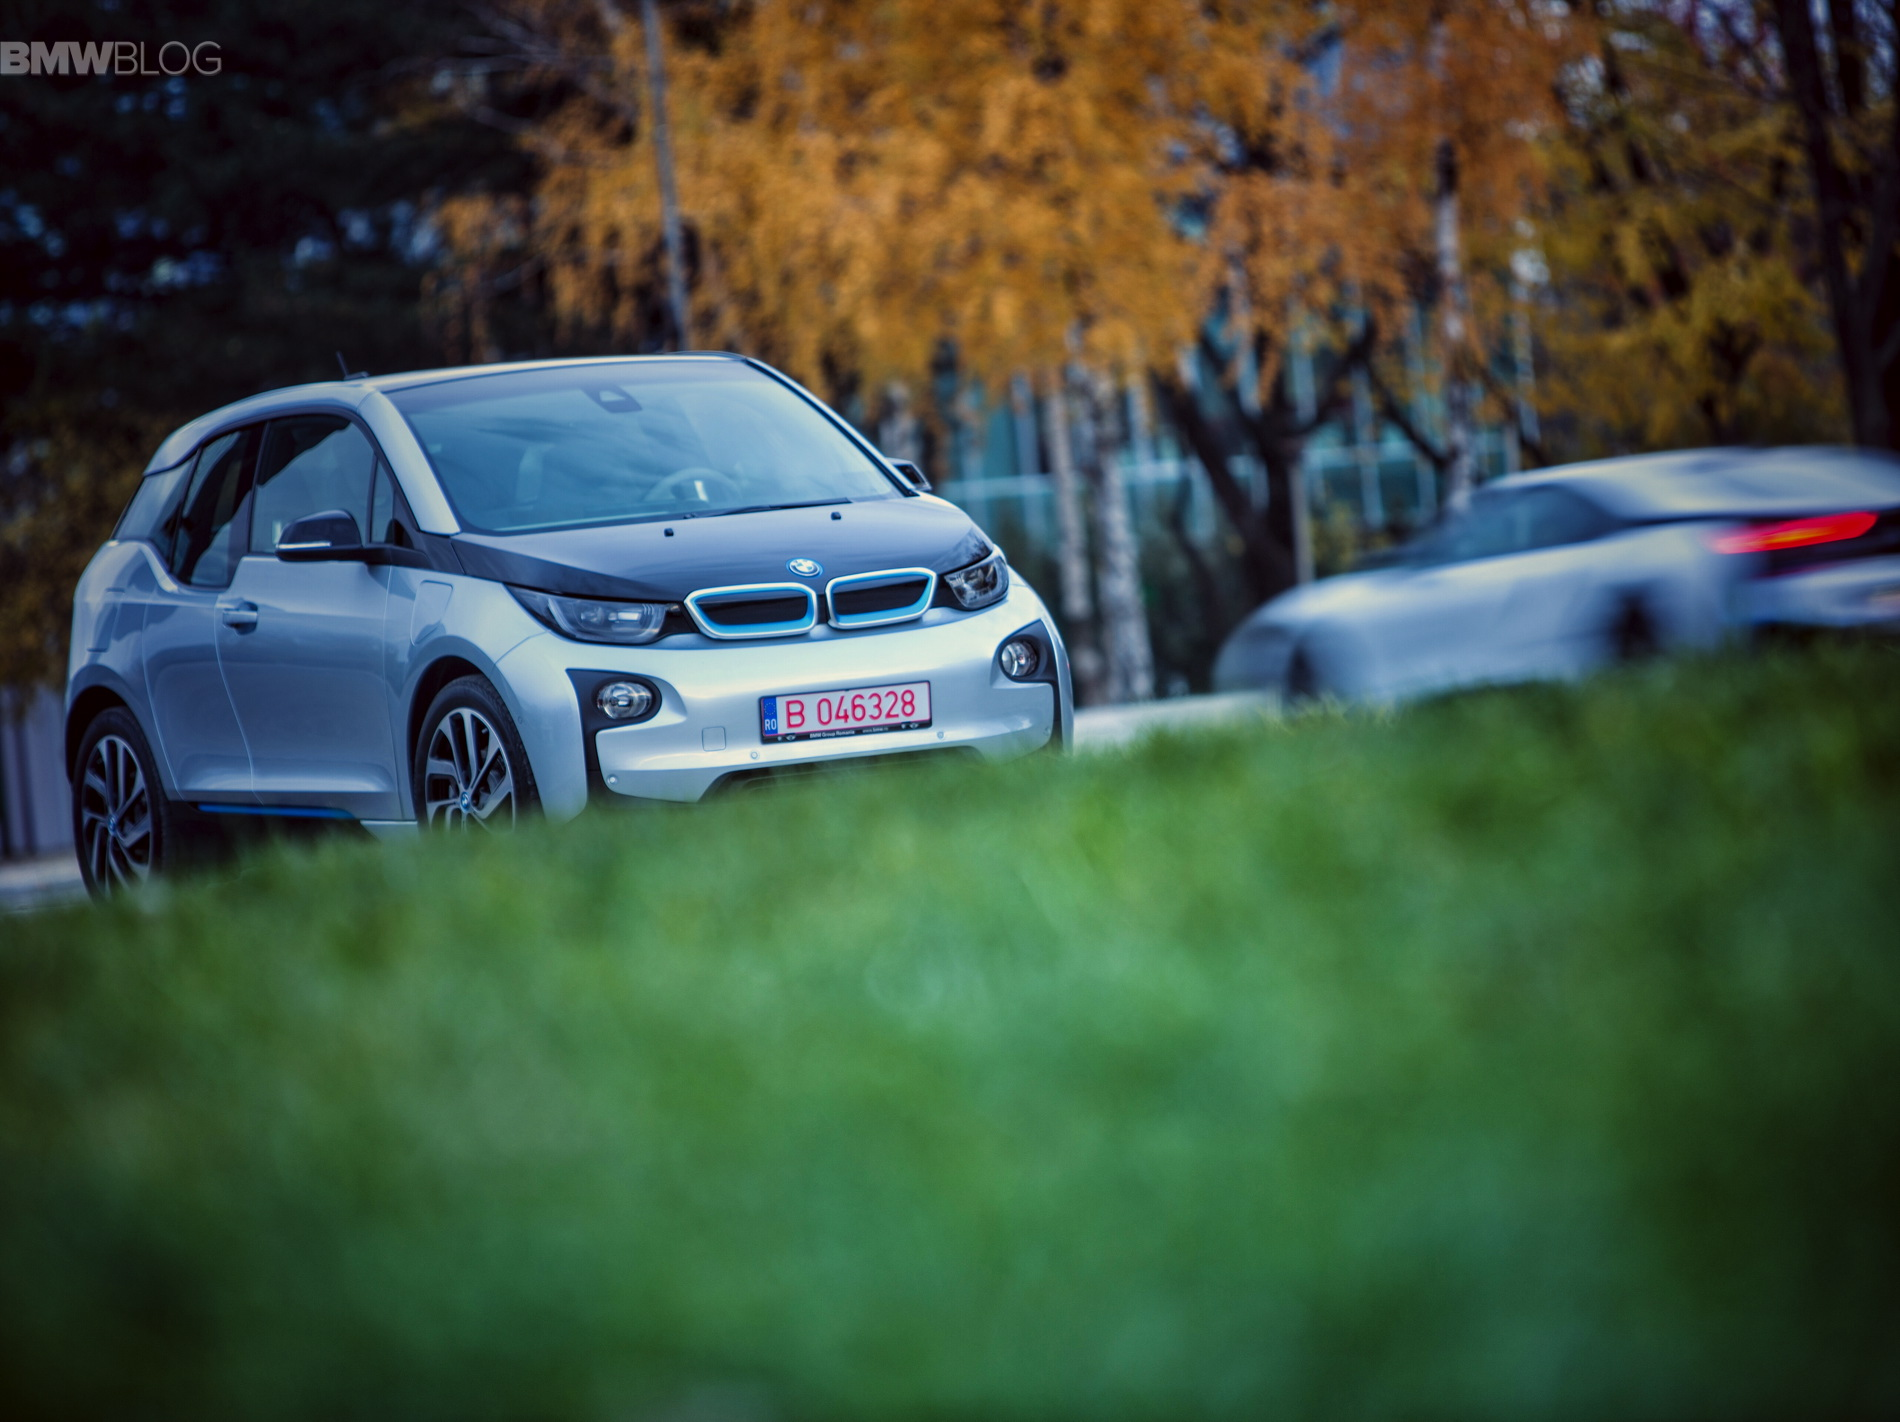 BMW i3 i8 photoshoot bucharest images 10